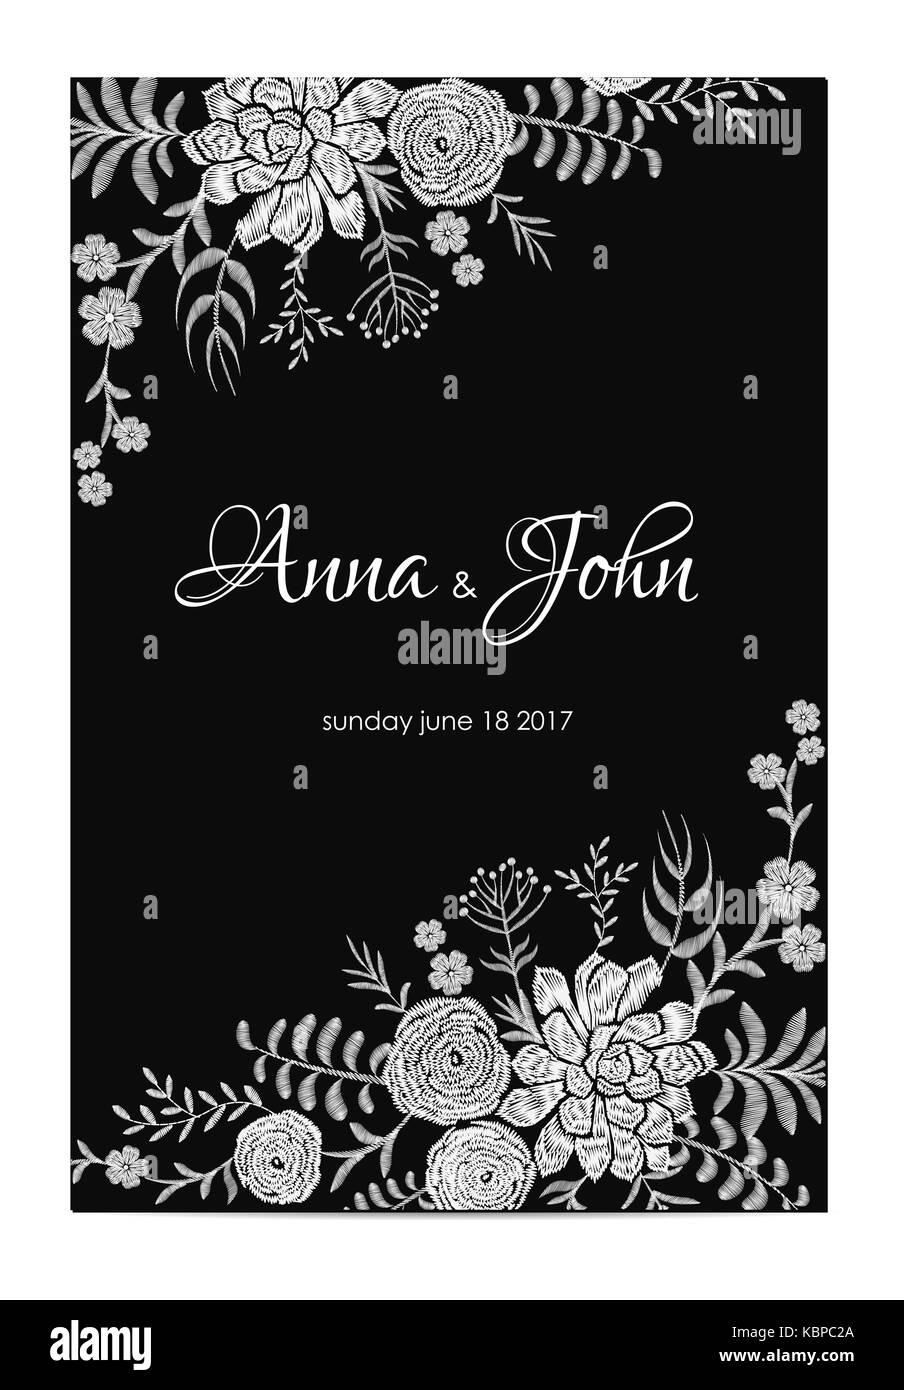 black and white wedding invitation. vintage greeting card template